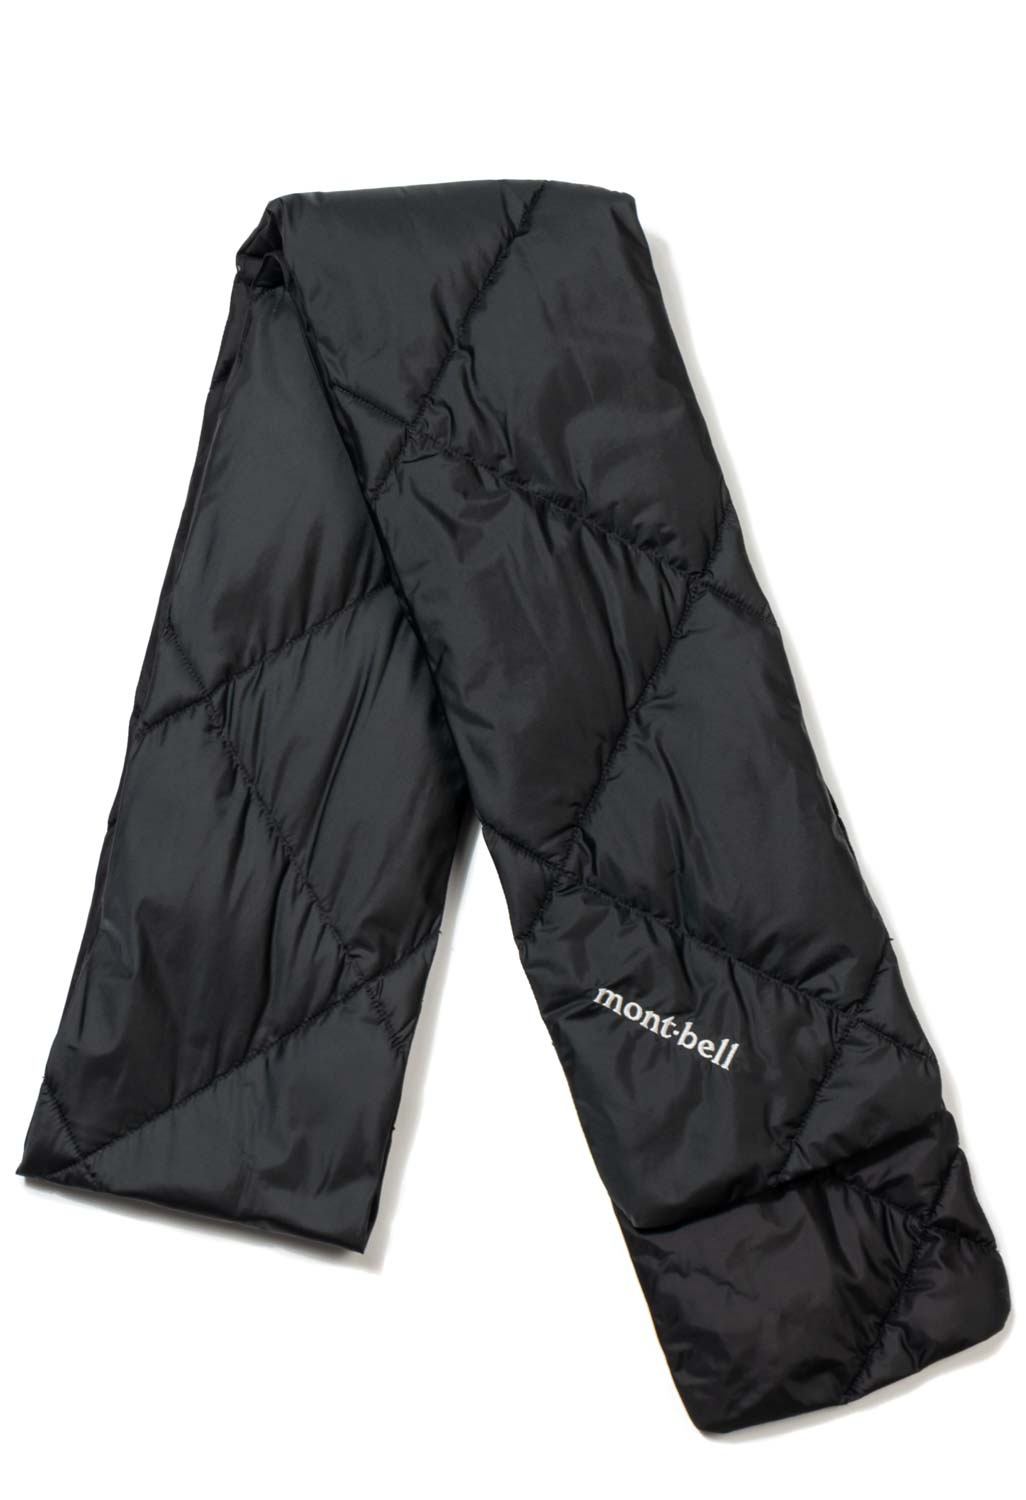 puffer / down scarf from Montbell